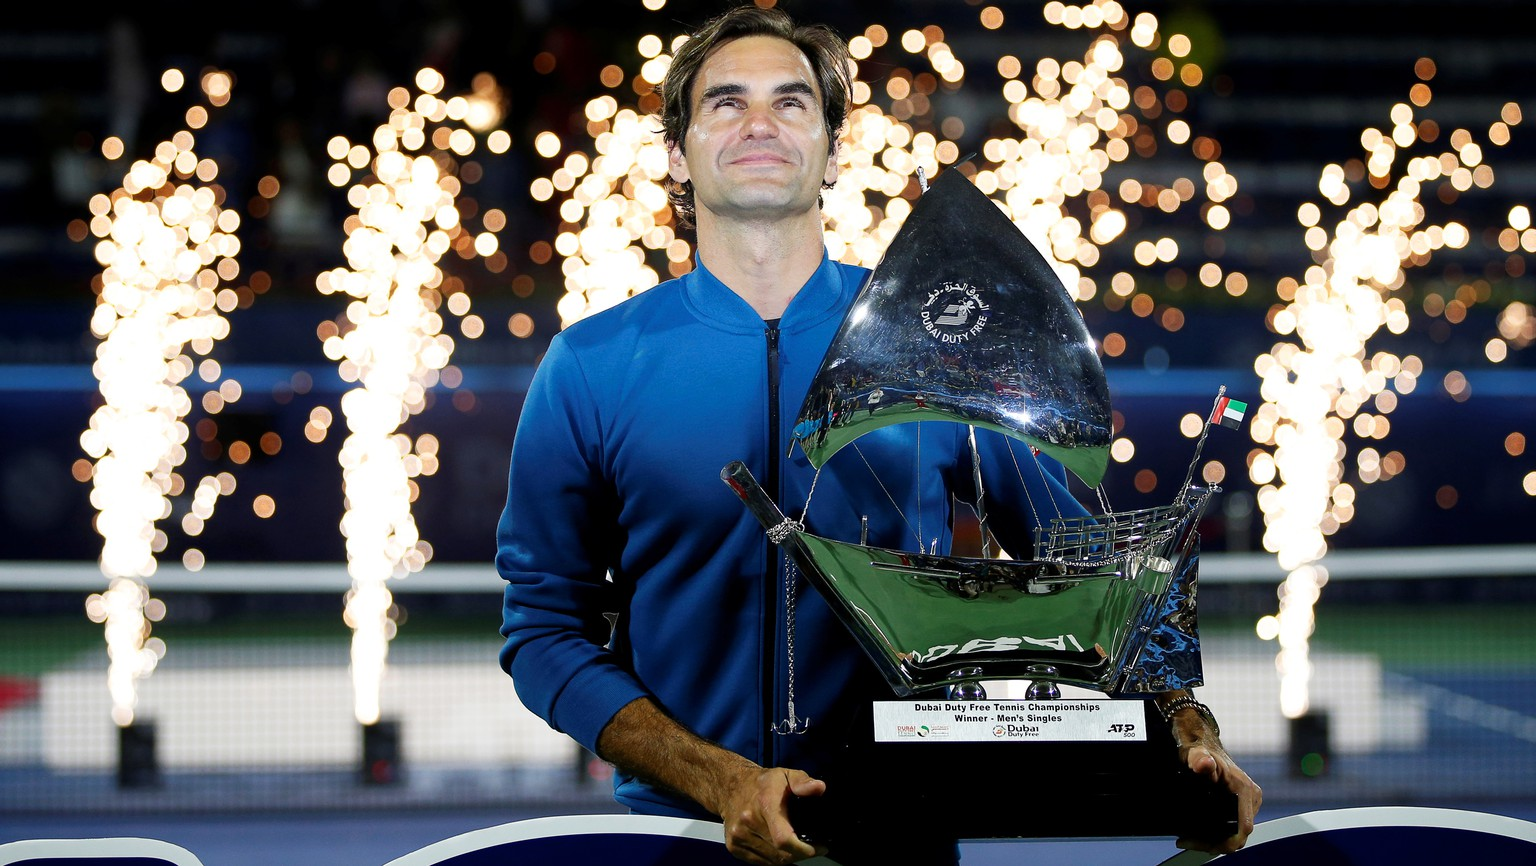 epa07409160 Roger Federer of Switzerland poses with his trophy after defeating Stefanos Tsitsipas of Greece in their final match at the Dubai Duty Free Tennis ATP Championships 2019 in Dubai, United Arab Emirates, 02 March 2019.  EPA/ALI HAIDER